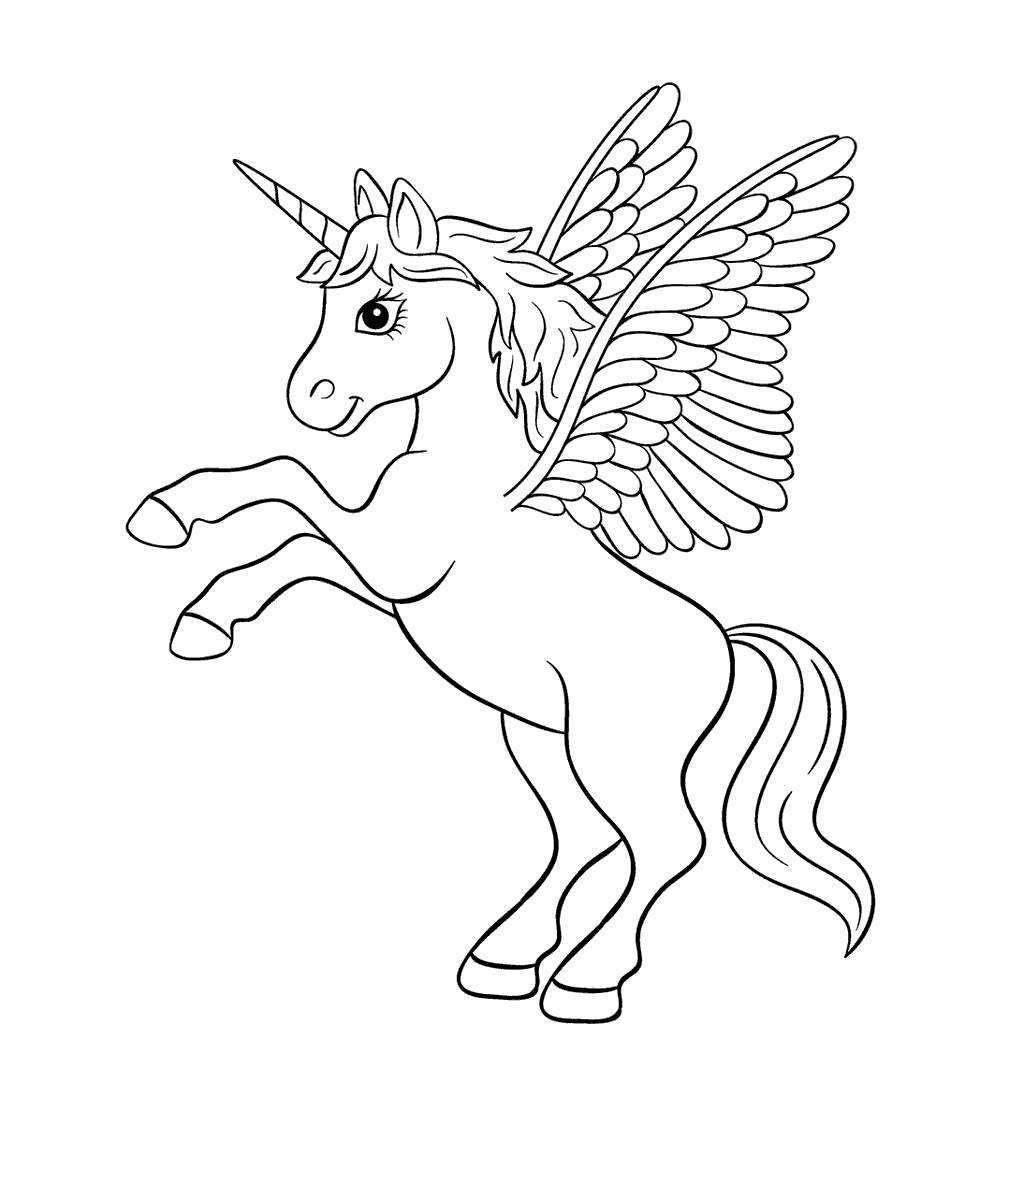 Queen Of My Little Pony Coloring Pages My Little Pony Coloring Pages Kidsdrawing Free My Little Pony Coloring Unicorn Coloring Pages Horse Coloring Pages